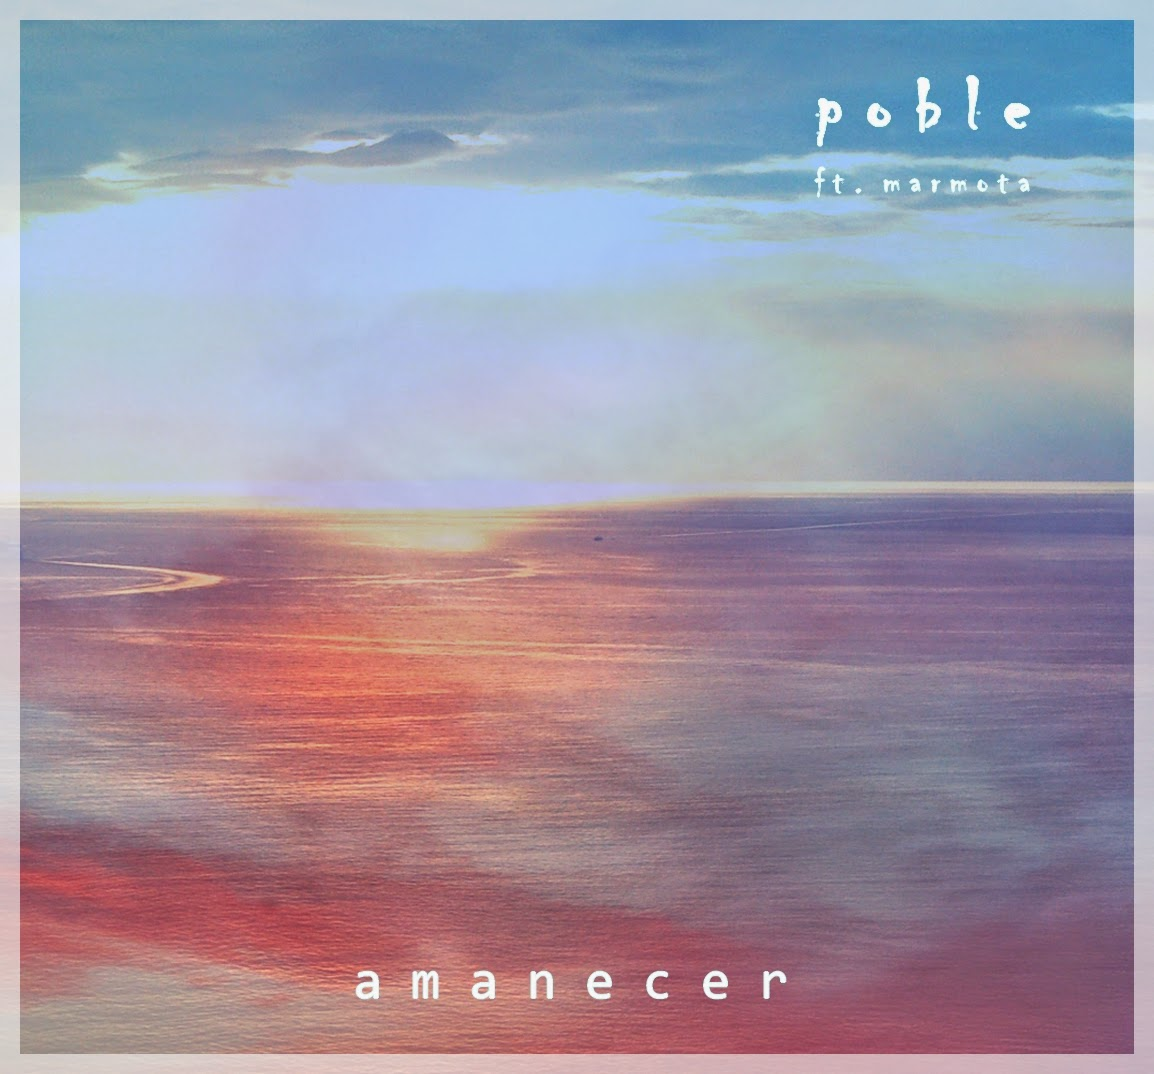 Poble - Amanecer EP